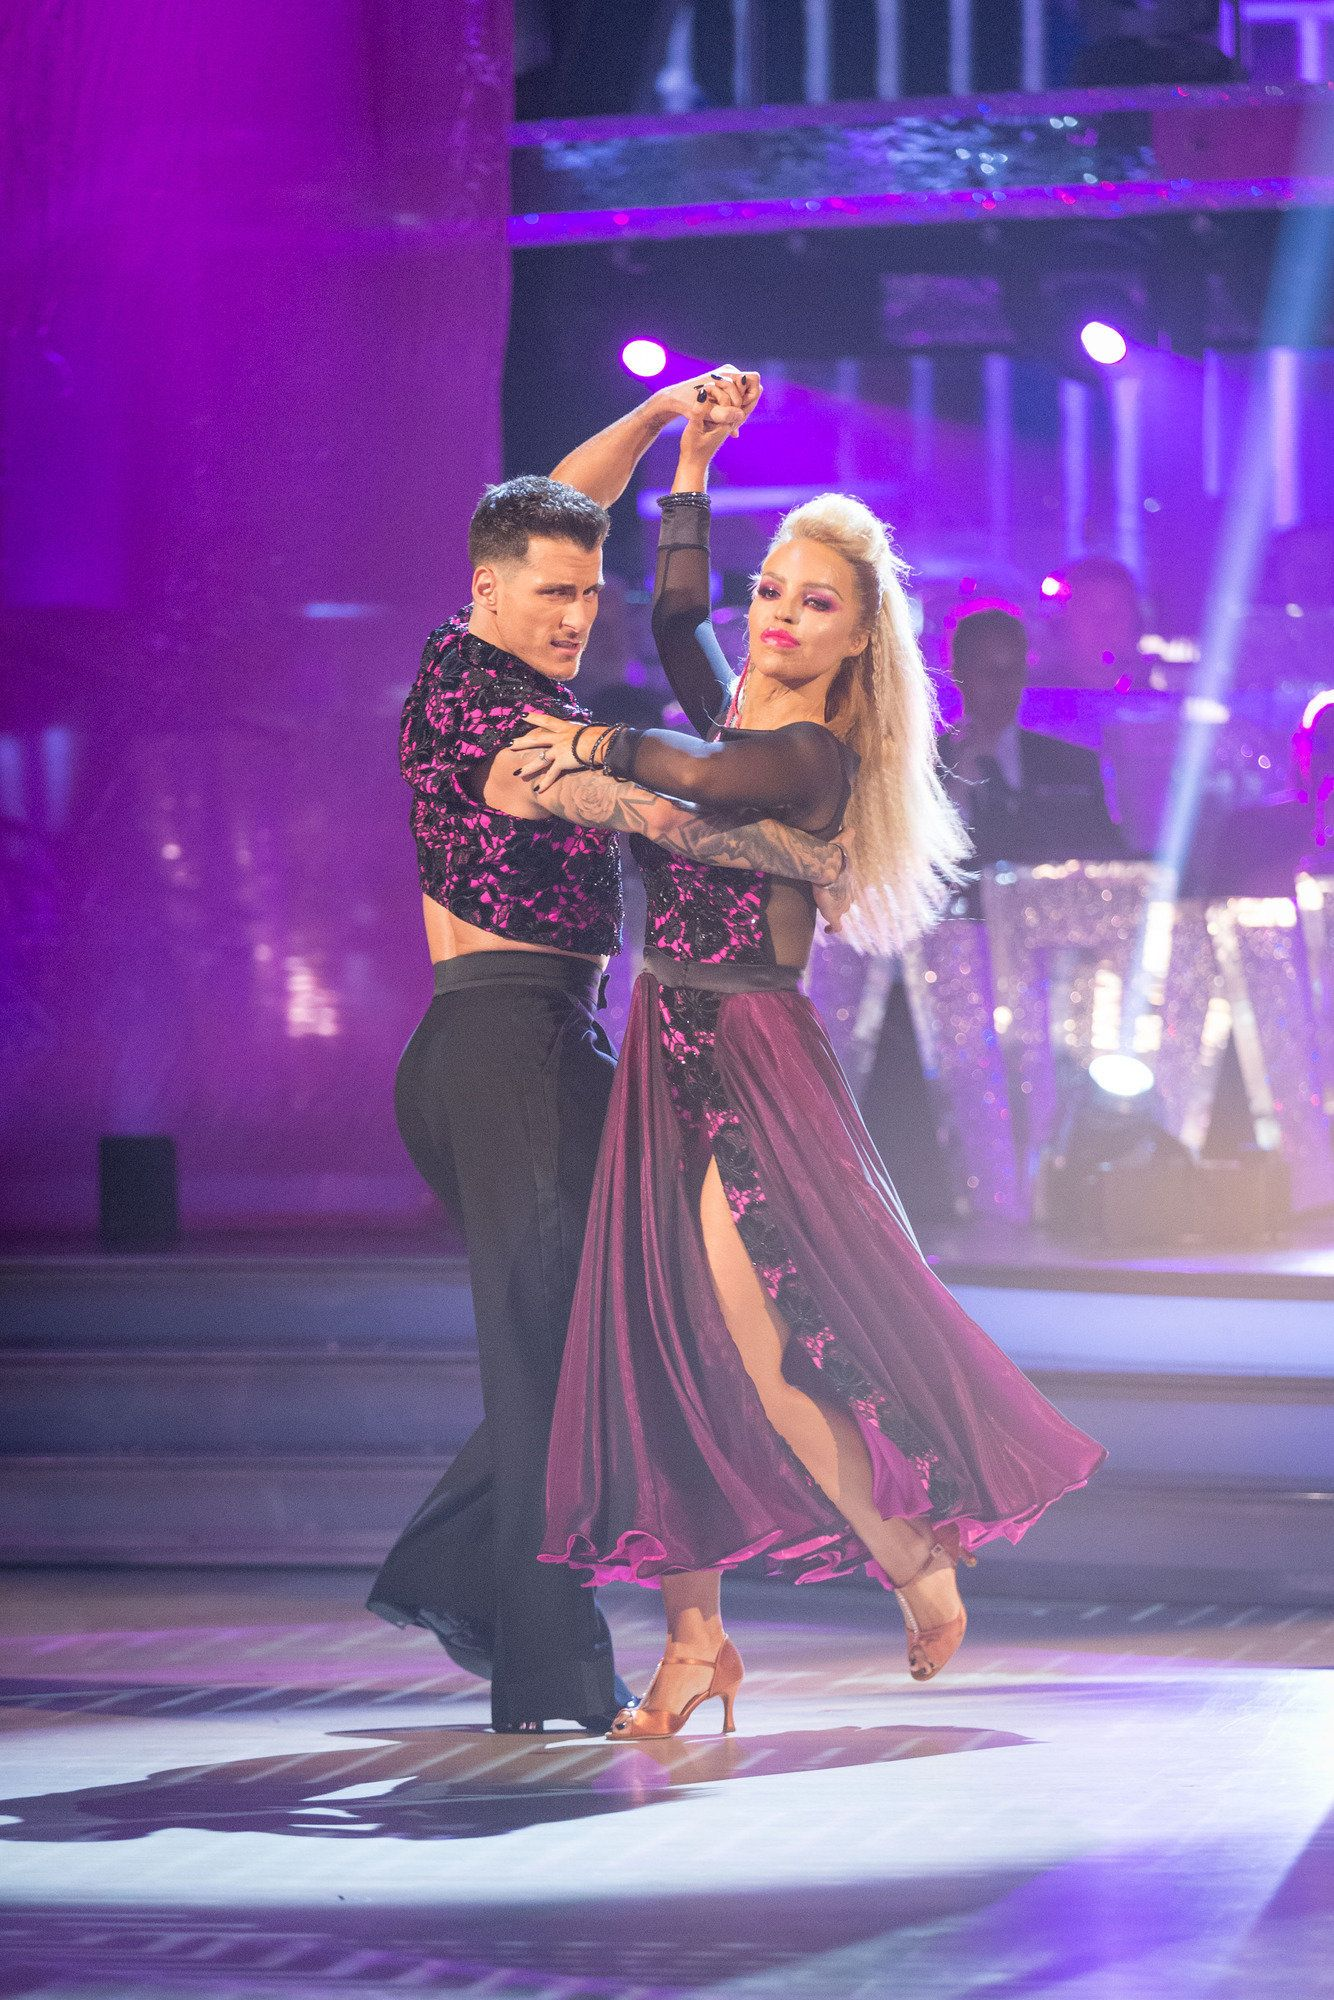 Katie Piper Says She's Finding 'Strictly' Particularly Difficult Amid 'Personal' And 'Legal'